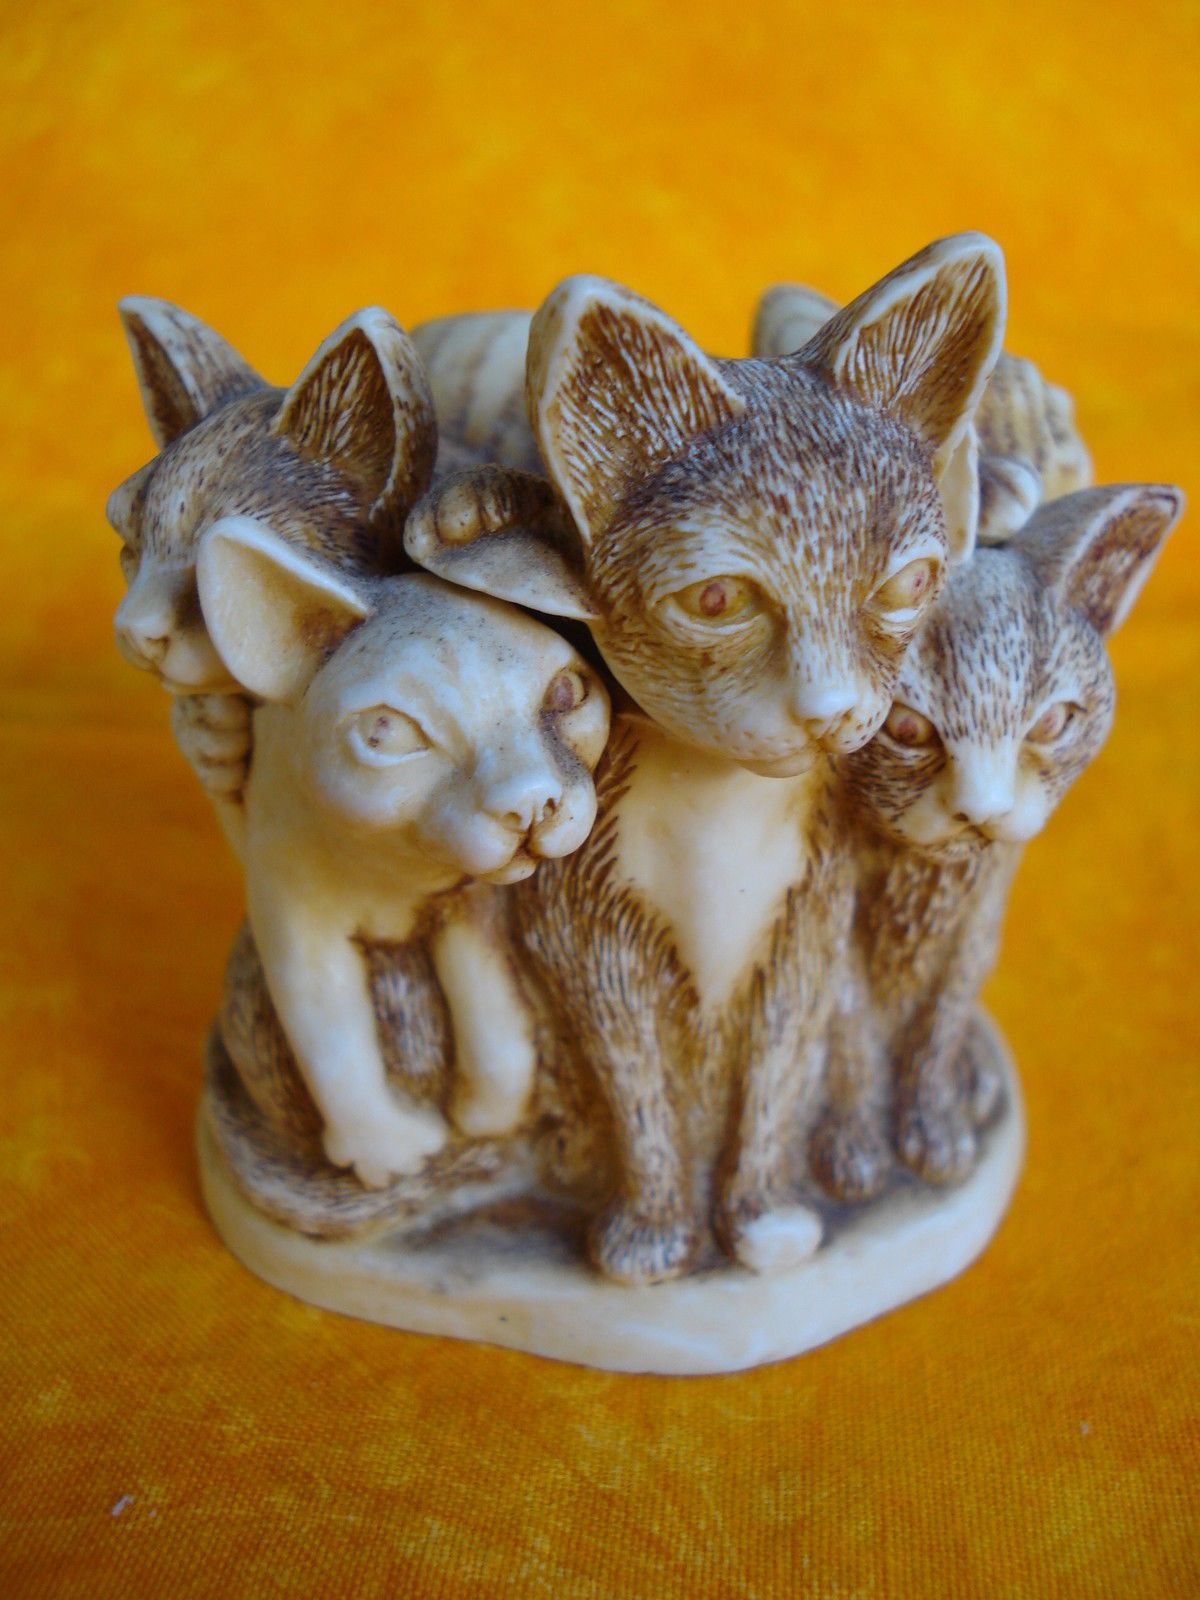 """Harmony Kingdom Six Cats Wound Together  Fur Ball  Treasure Jest  """"FUR BALL"""" TJMT  HARMONY KINGDOM  Released in 4/1/1995  Condition: Nice Condition, no chips or damage.  Comes with its original box but no paper insets.  Measures Approx. 2.13"""" b..."""